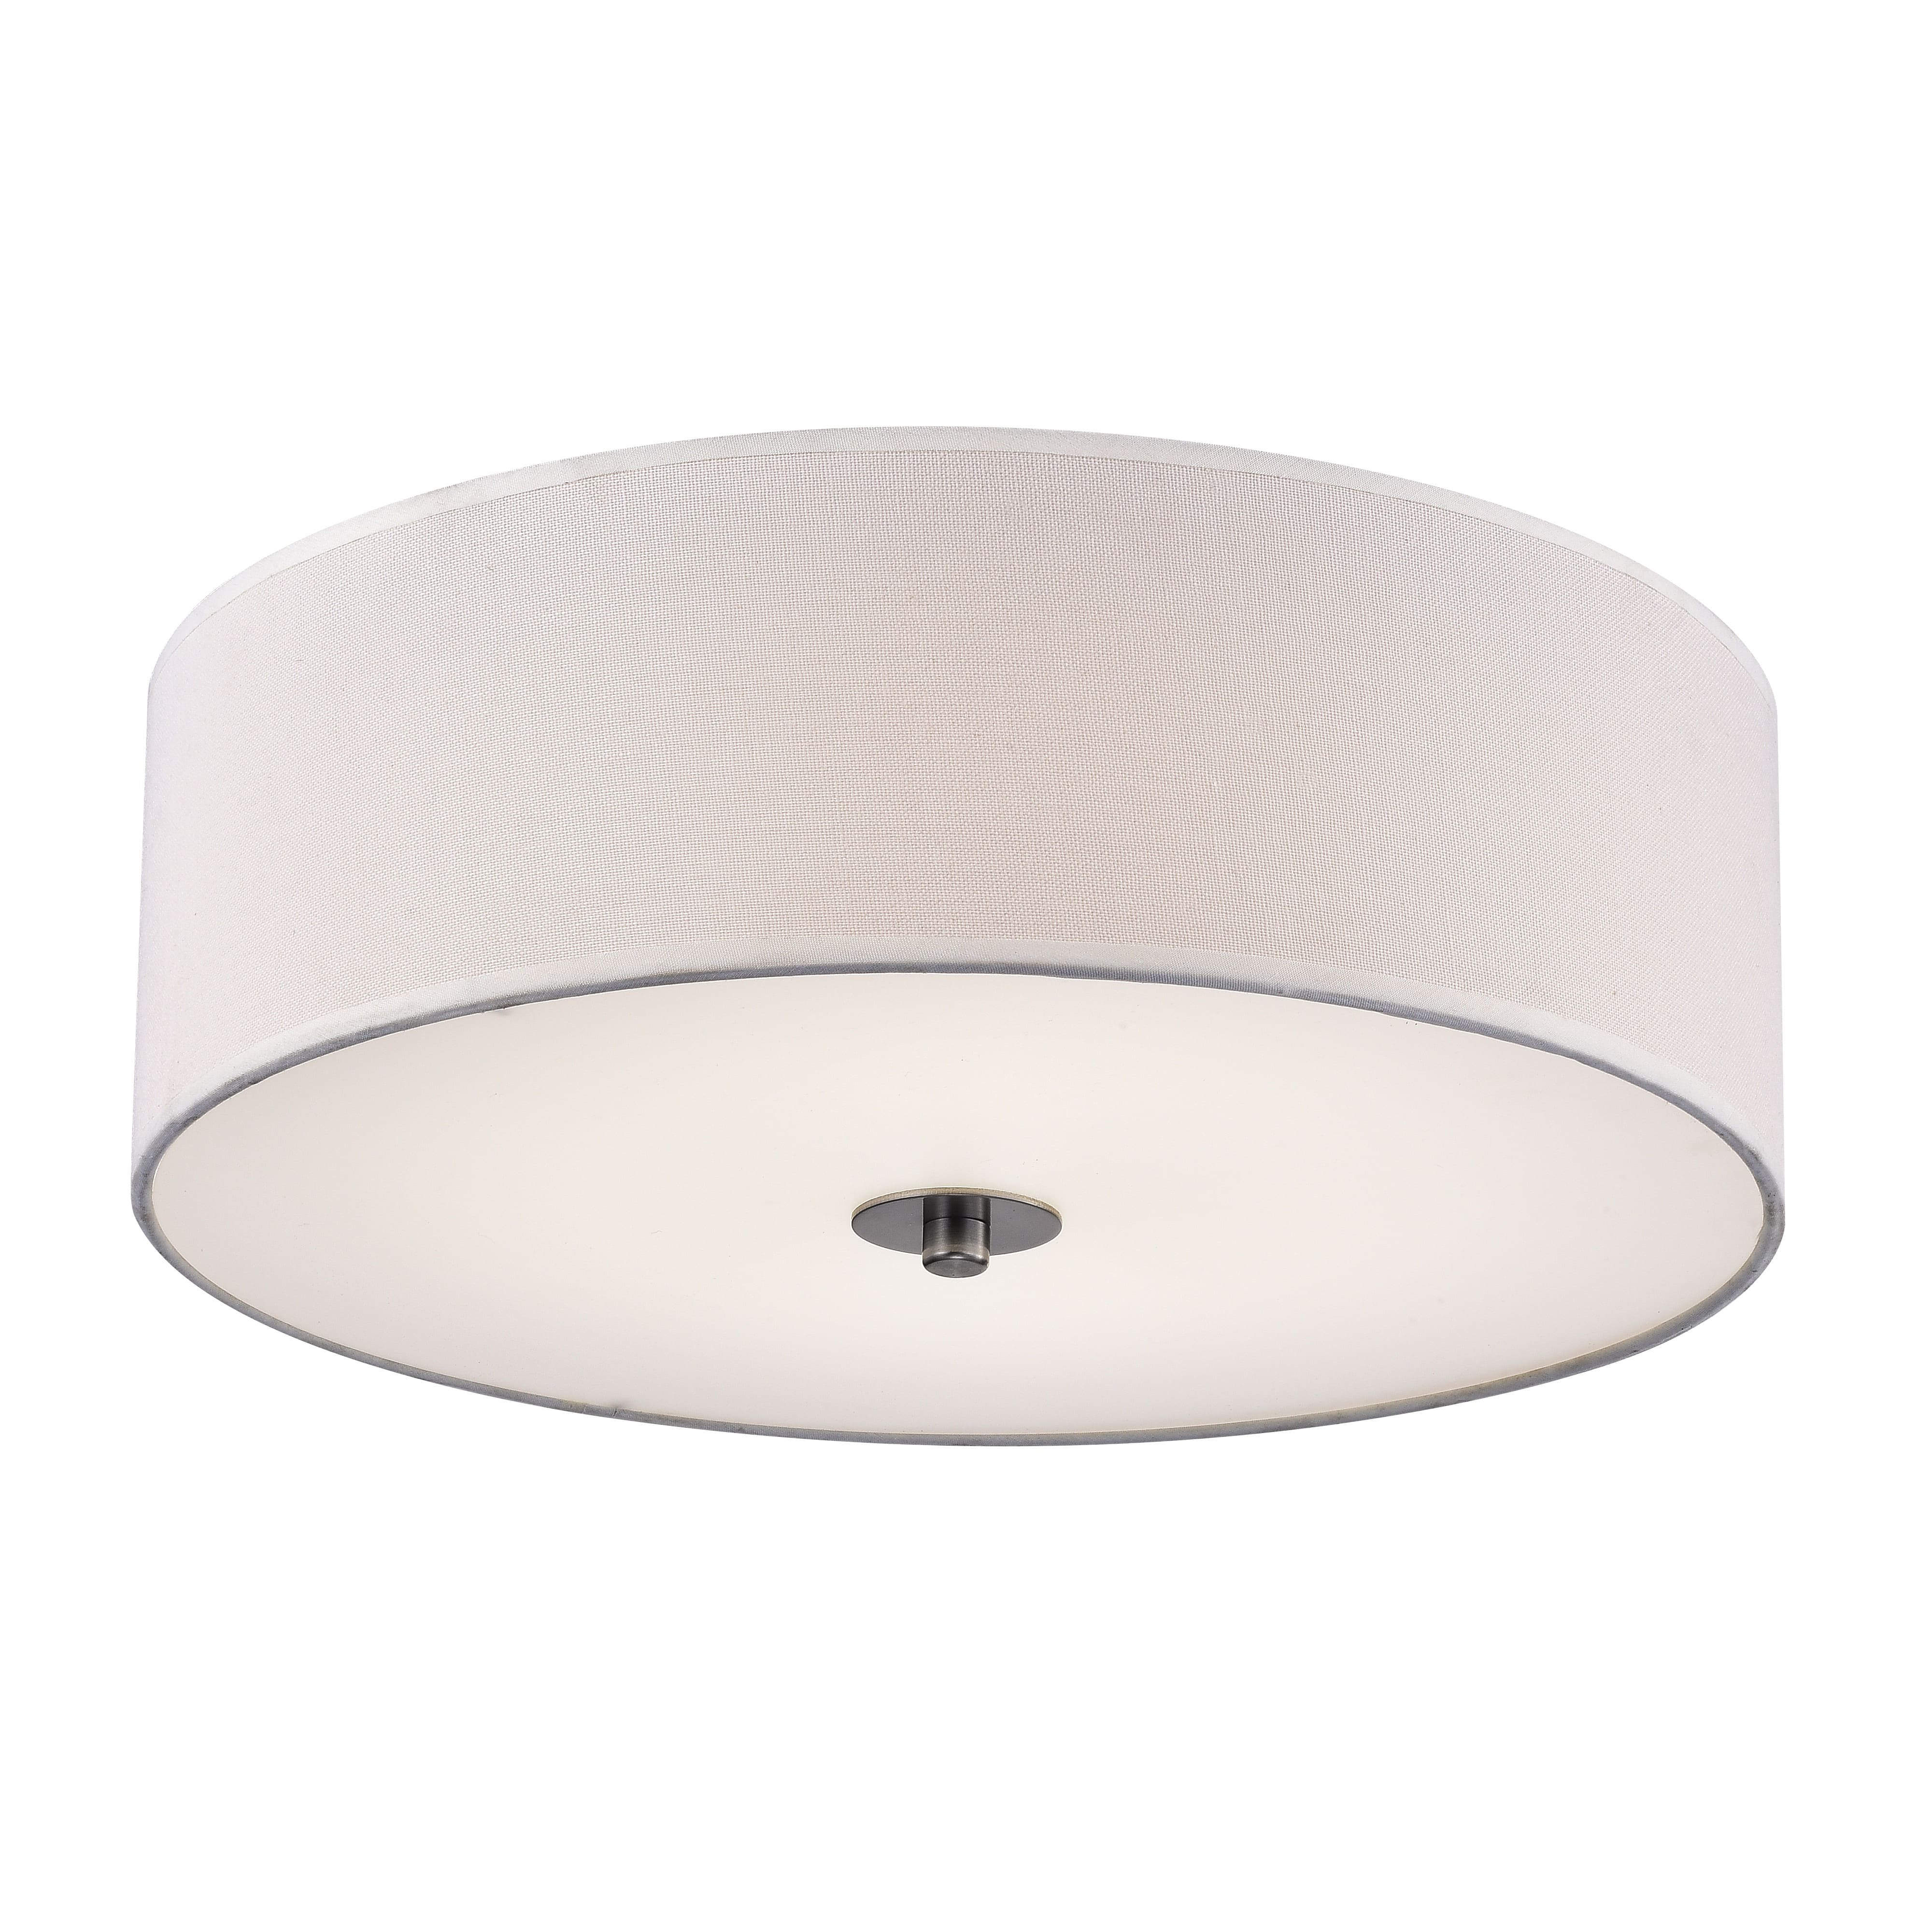 https://www.hotel-lamps.com/resources/assets/images/product_images/40.jpg